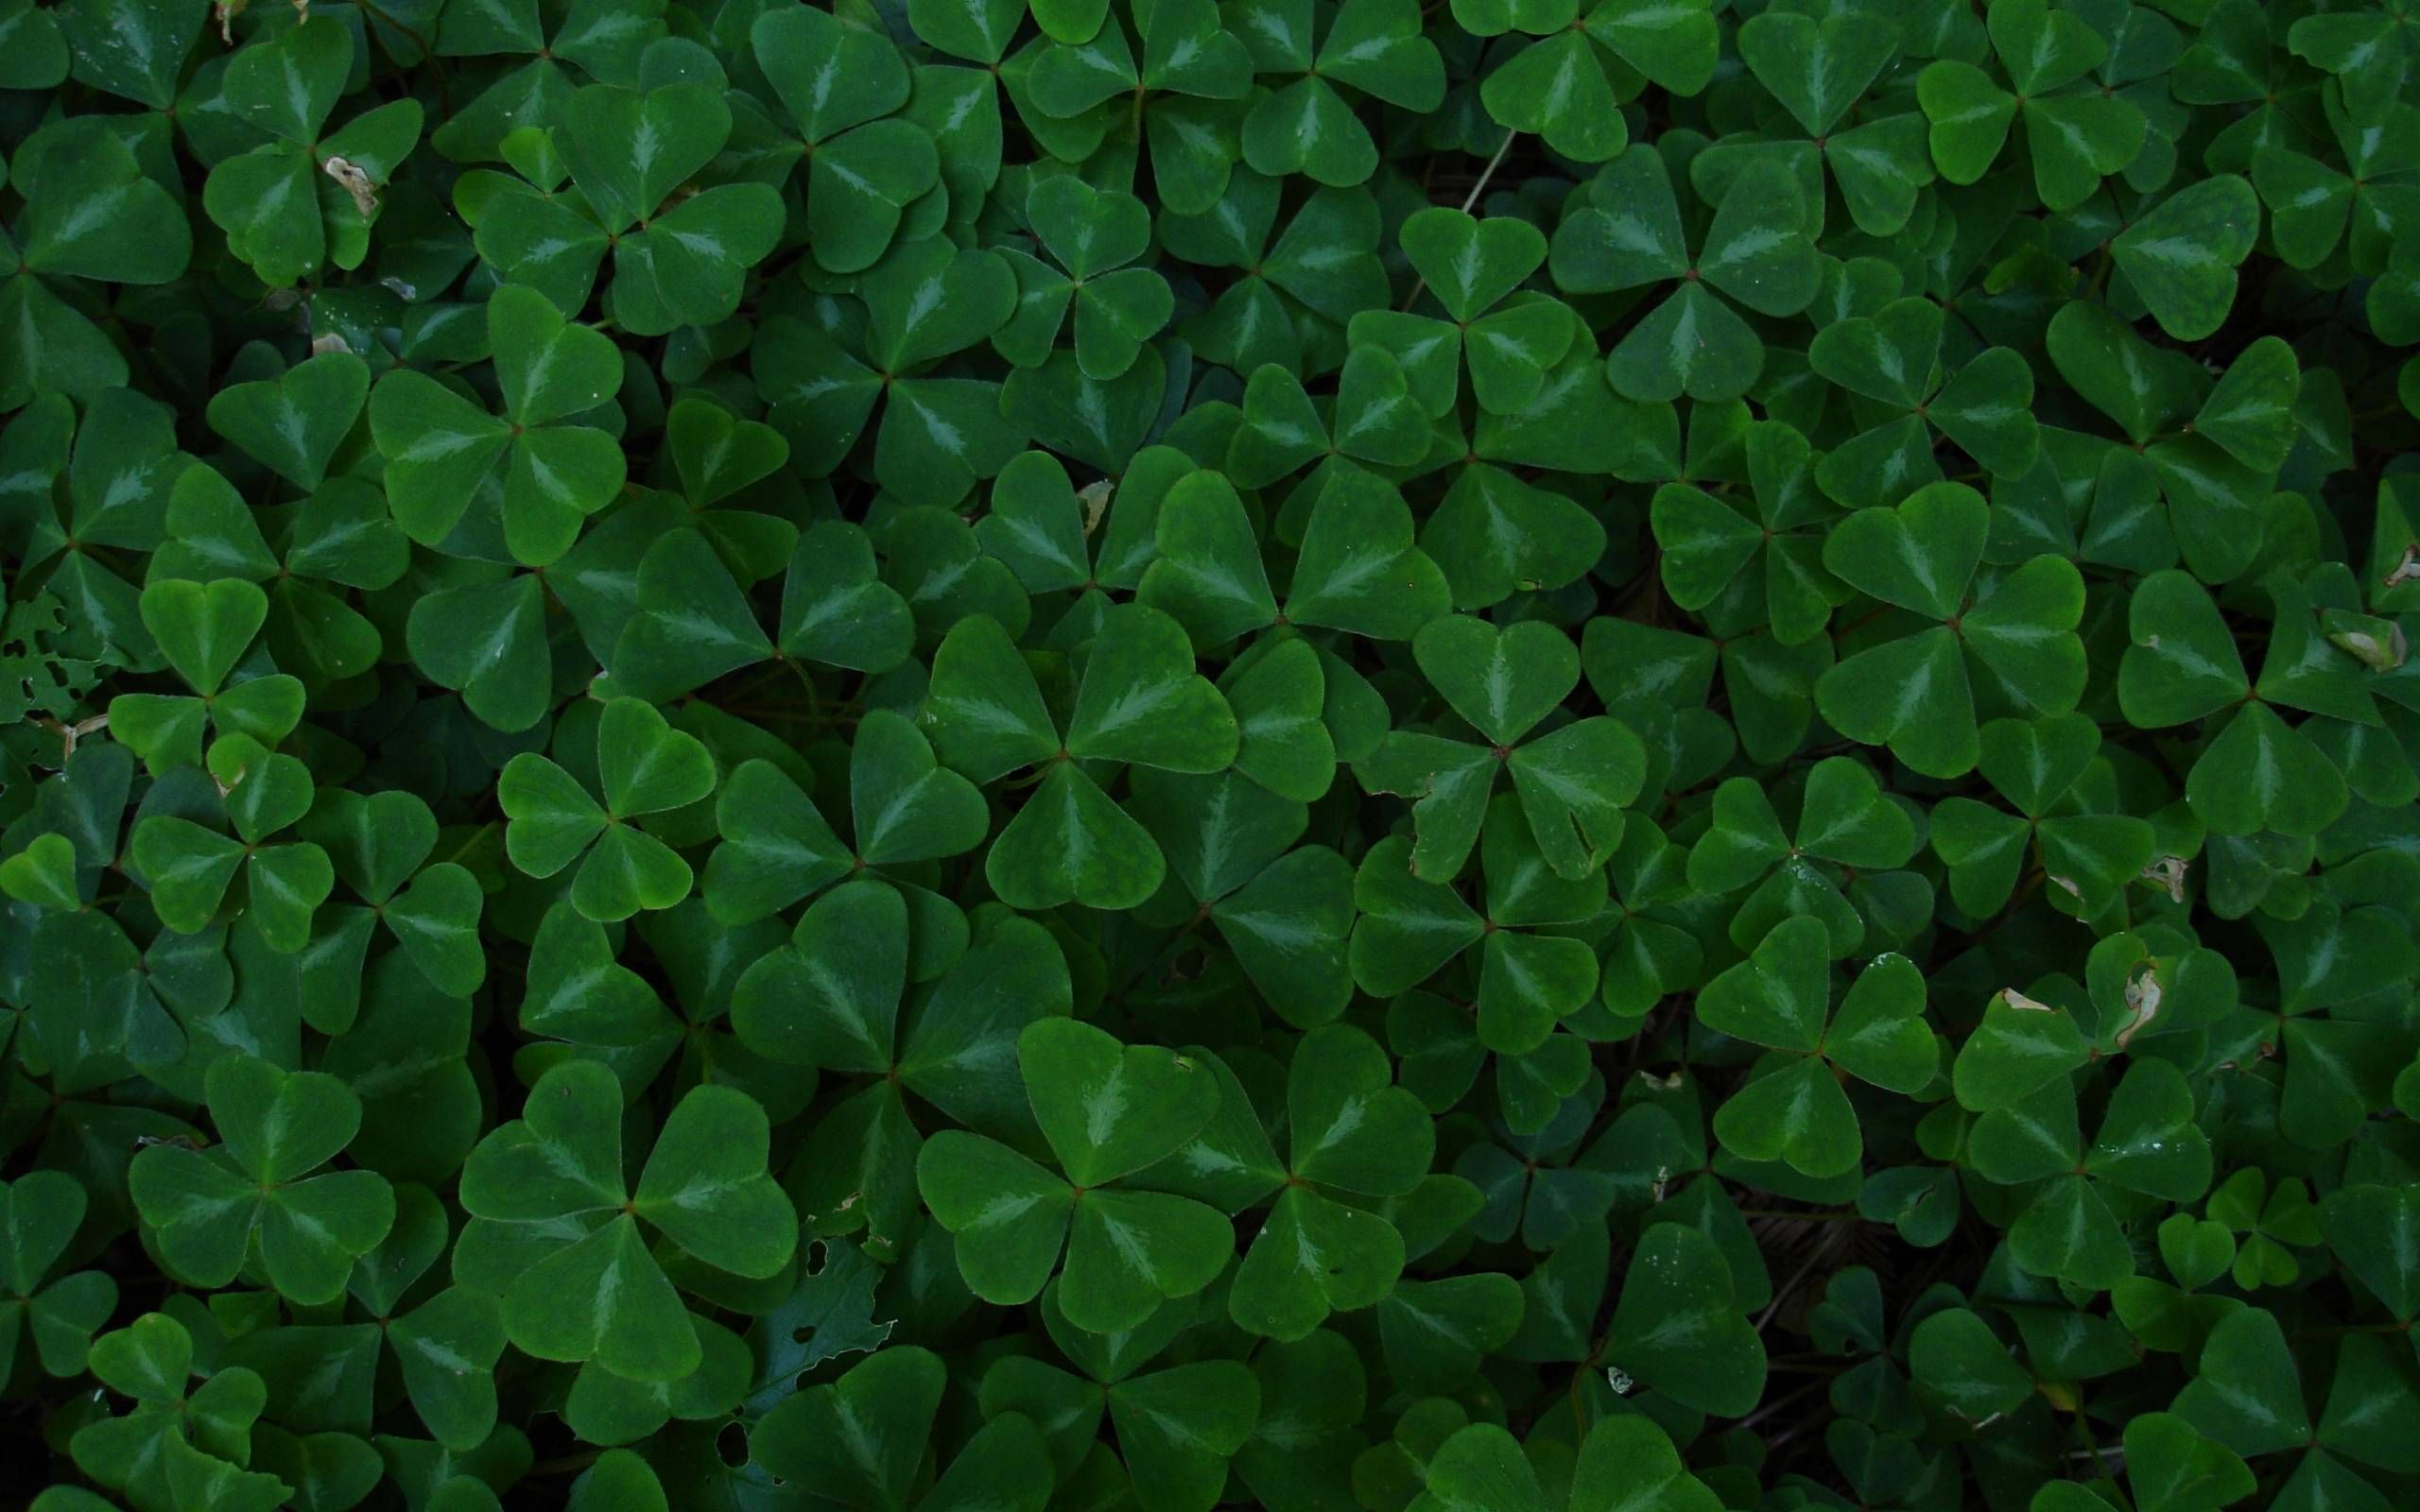 Green Leaf Clover Wallpaper 2560x1600 10549